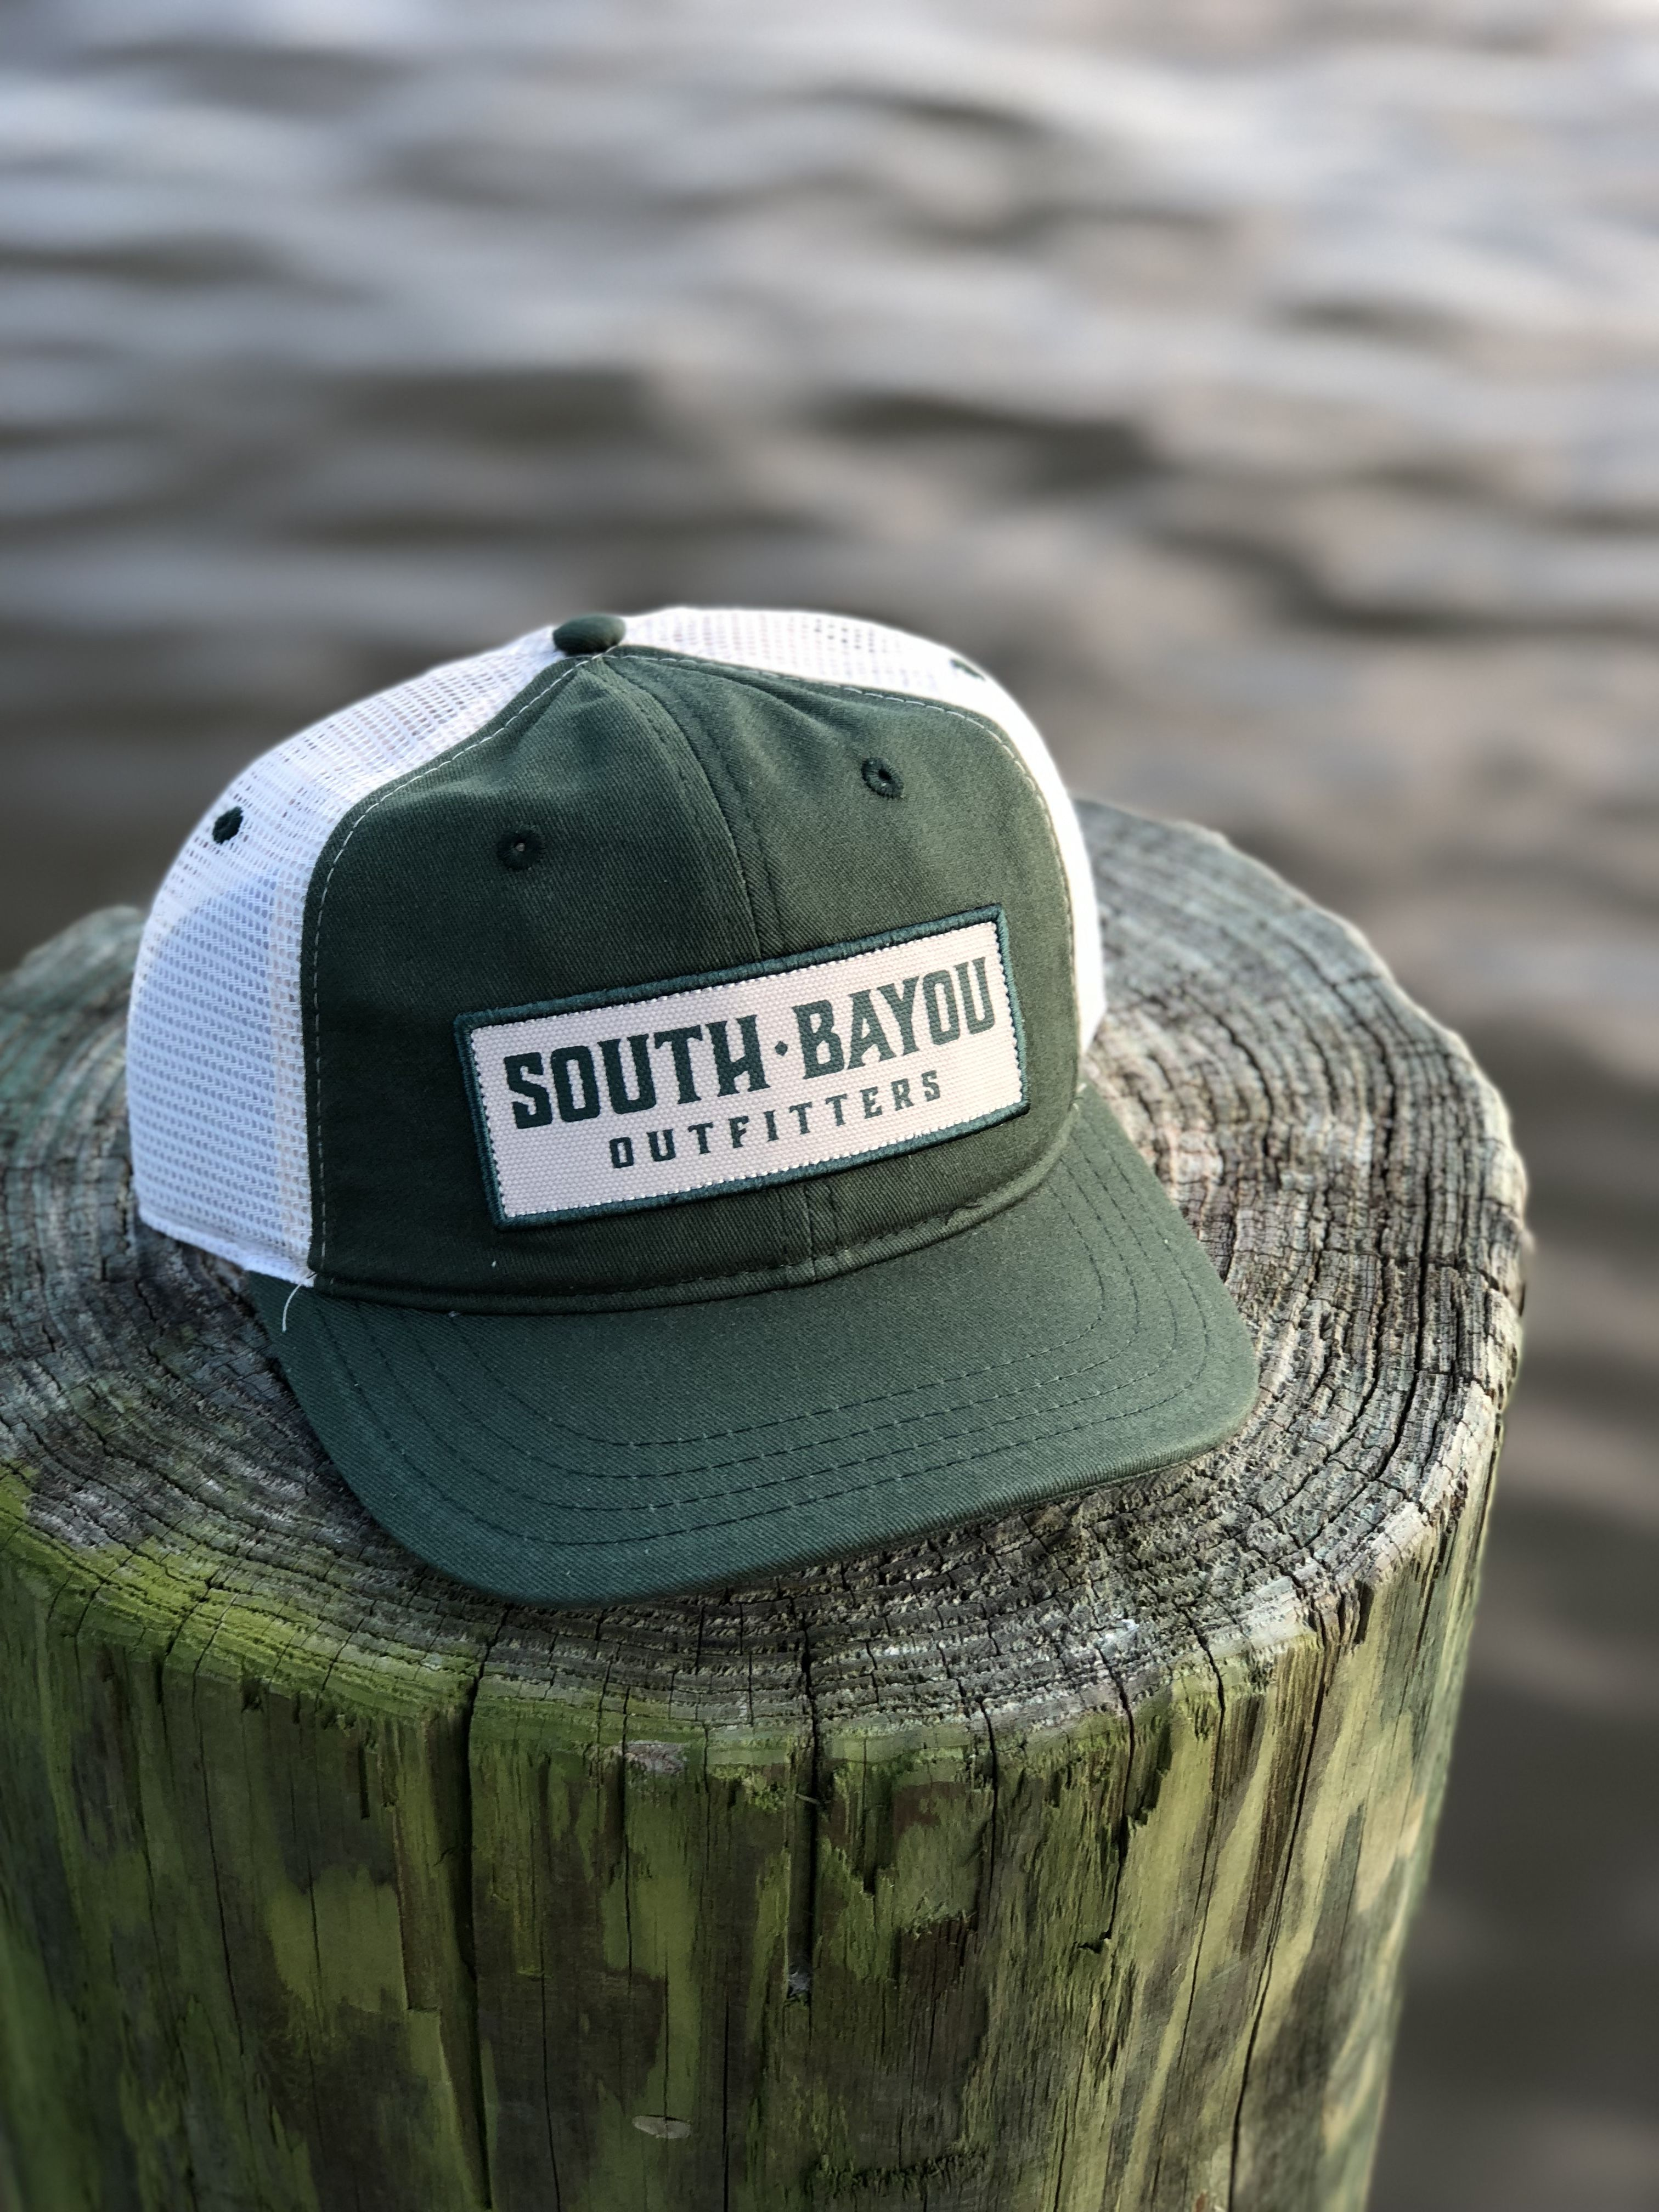 769d6568b2a Southbayou hats headwear SnapBack patch southern apparel South oldsouth Bayou  delta outdoor men s